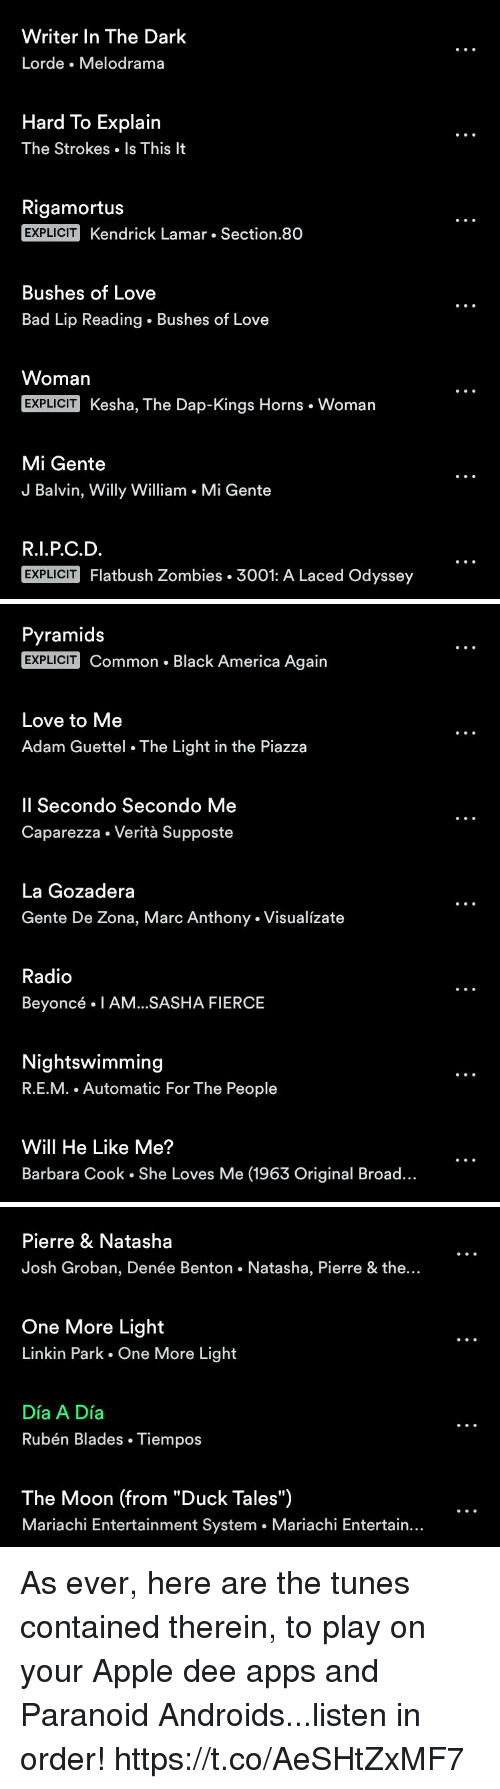 "America, Apple, and Bad: Writer In The Dark  Lorde Melodrama  Hard To Explain  The Strokes Is This It  Rigamortus  EXPLICIT Kendrick Lamar Section.80  Bushes of Love  Bad Lip Reading. Bushes of Love  Womarn  EXPLICIT  Kesha, The Dap-Kings Horns Woman  Mi Gente  J Balvin, Willy William . Mi Gente  R.I.P.C.D.  EXPLICIT Flatbush Zombies . 3001: A Laced Odyssey   Pyramids  EXPLICIT Common . Black America Again  Love to Me  Adam Guettel The Light in the Piazza  Il Secondo Secondo Me  Caparezza . Verità Supposte  La Gozadera  Gente De Zona, Marc Anthony. Visualízate  Radio  Beyoncé . 1 AM.SASHA FIERCE  Nightswimming  R.E.M. Automatic For The People  Will He Like Me?  Barbara Cook . She Loves Me (1963 Original Broad...   Pierre & Natashaa  Josh Groban, Denée Benton. Natasha, Pierre & the...  One More Light  Linkin Park One More Light  Día A Día  Rubén Blades. Tiempos  The Moon (from ""Duck Tales"")  Mariachi Entertainment System . Mariachi Entertain... As ever, here are the tunes contained therein, to play on your Apple dee apps and Paranoid Androids...listen in order! https://t.co/AeSHtZxMF7"